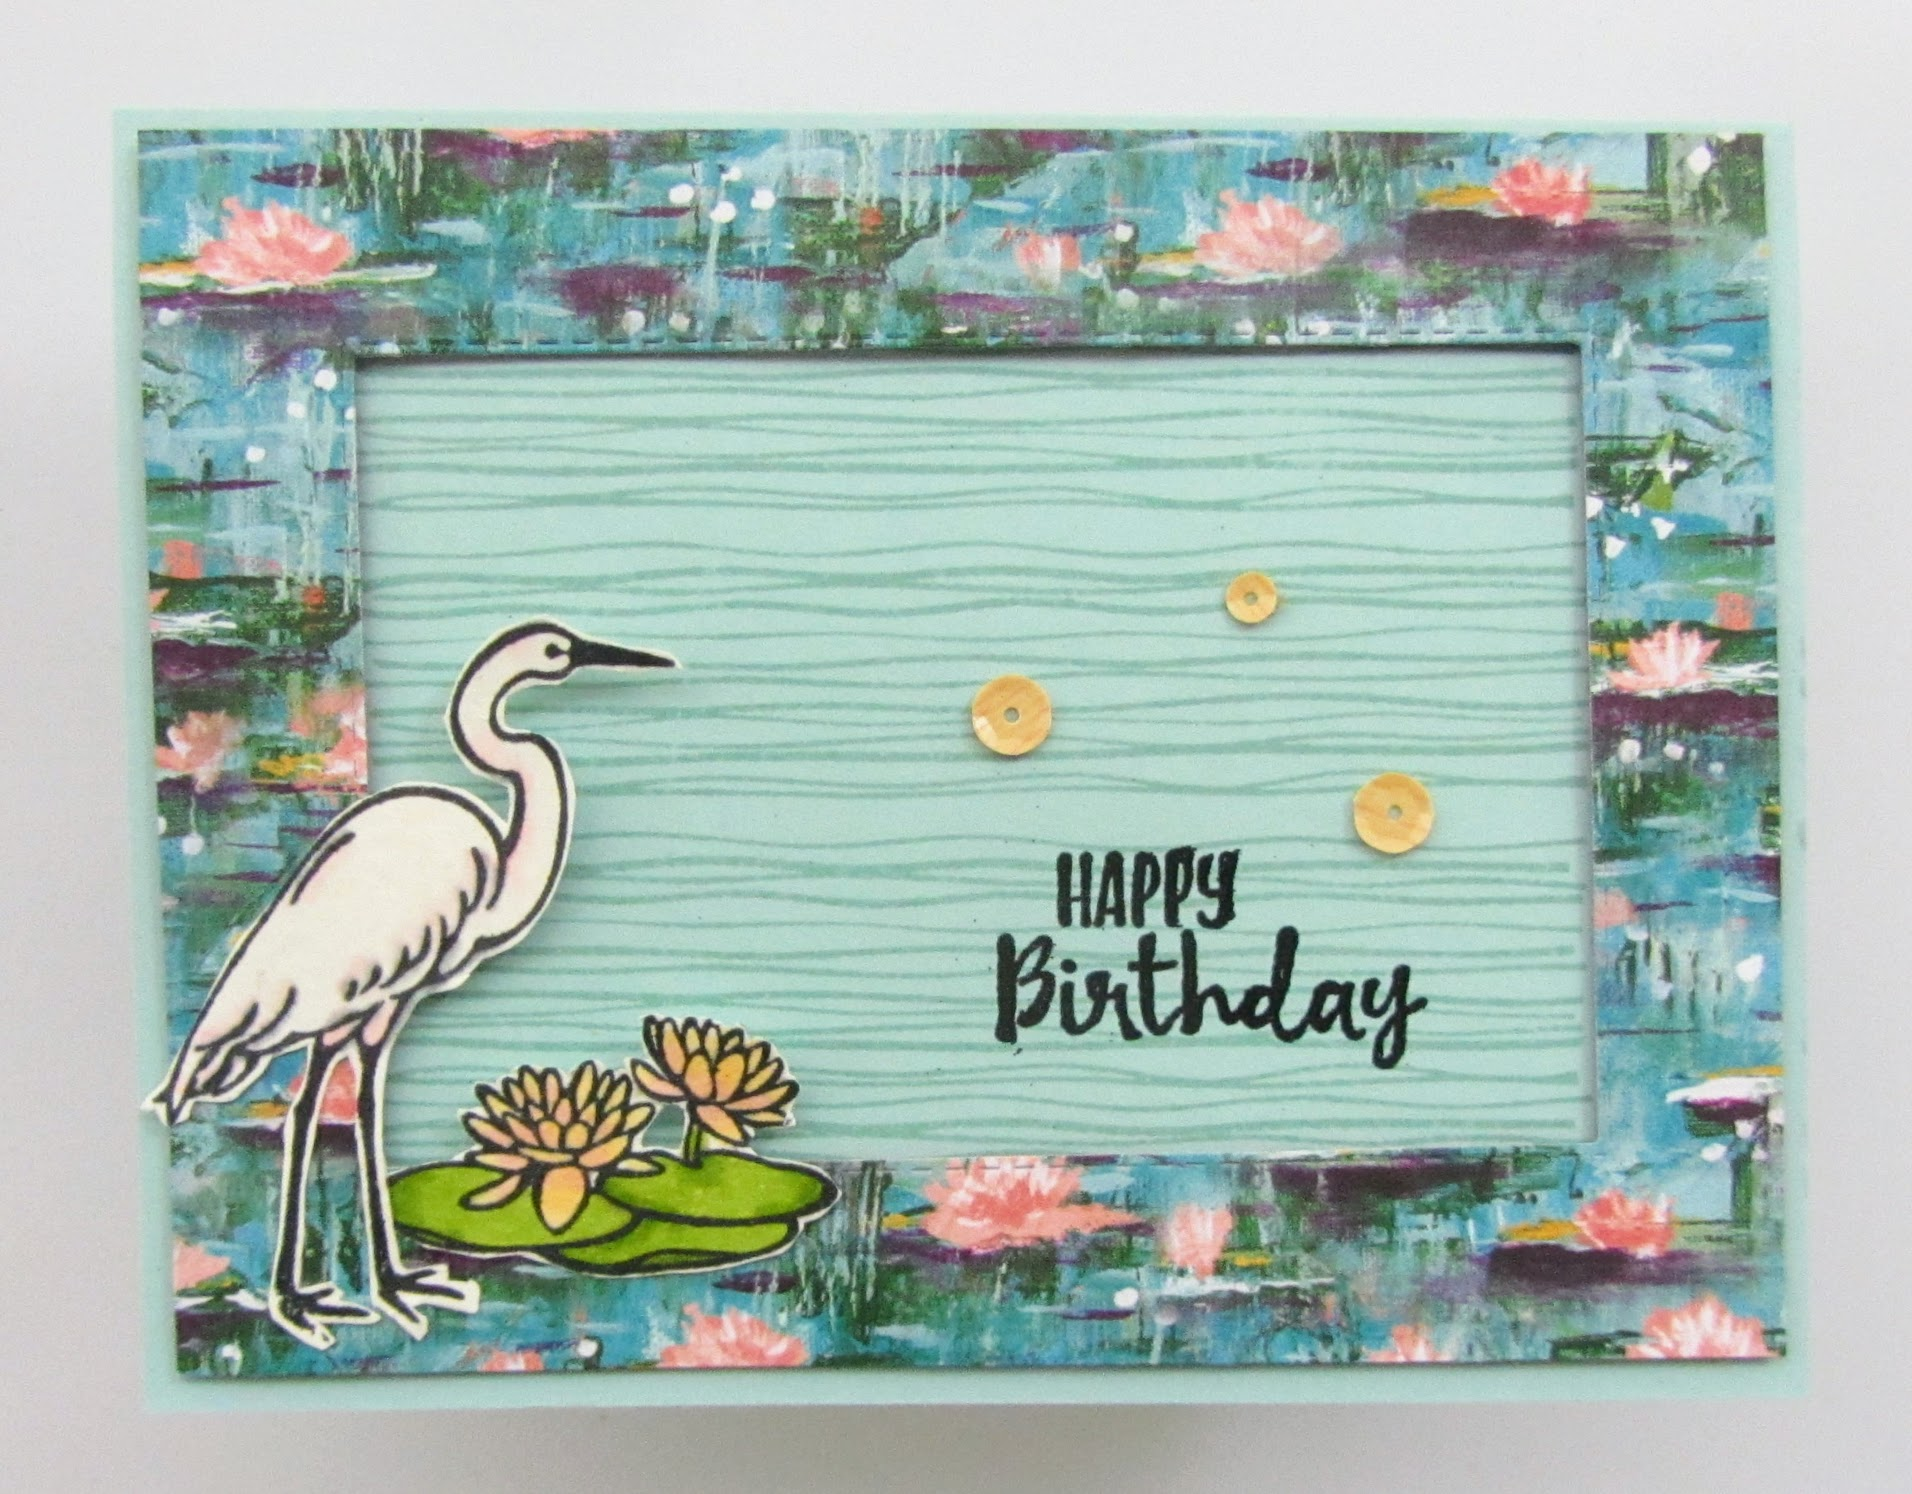 Stampin-Up-Lily-Pad-Lake-Sending-You-Thoughts-Stitched-Rectangle-Dies-heat-embossing-Stampin-Blends-birthday-card-inside-view-Debra-Simonis-Stampinup